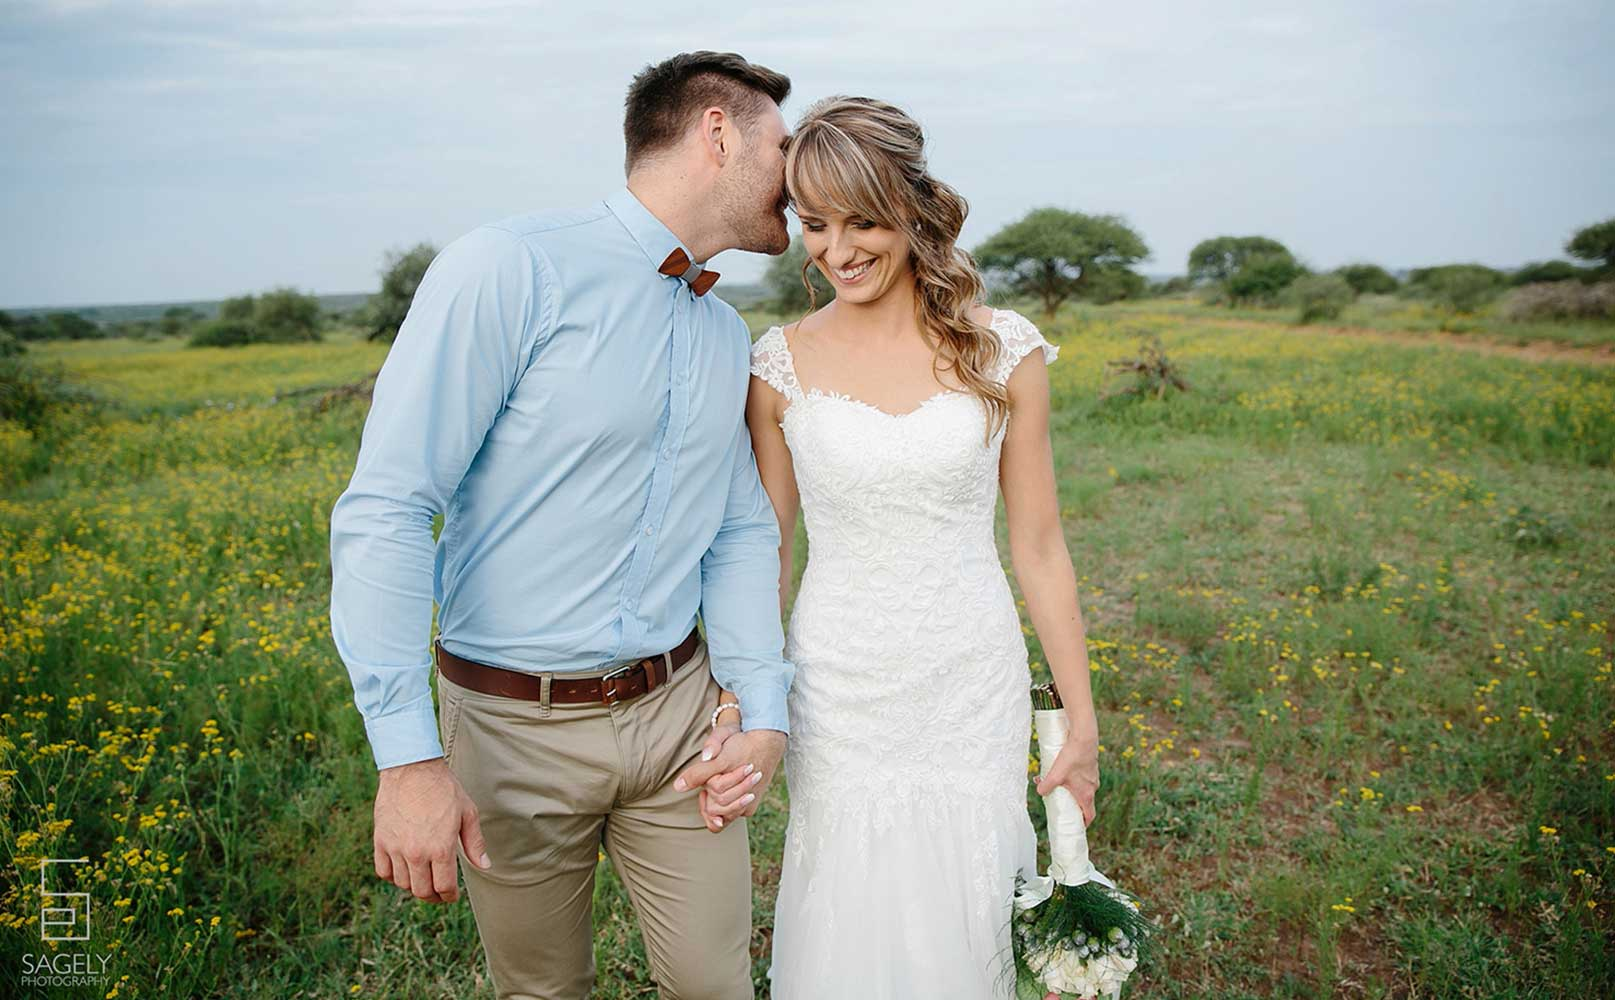 Bush Wedding Venue Gauteng - Mongena Lodge, Pretoria